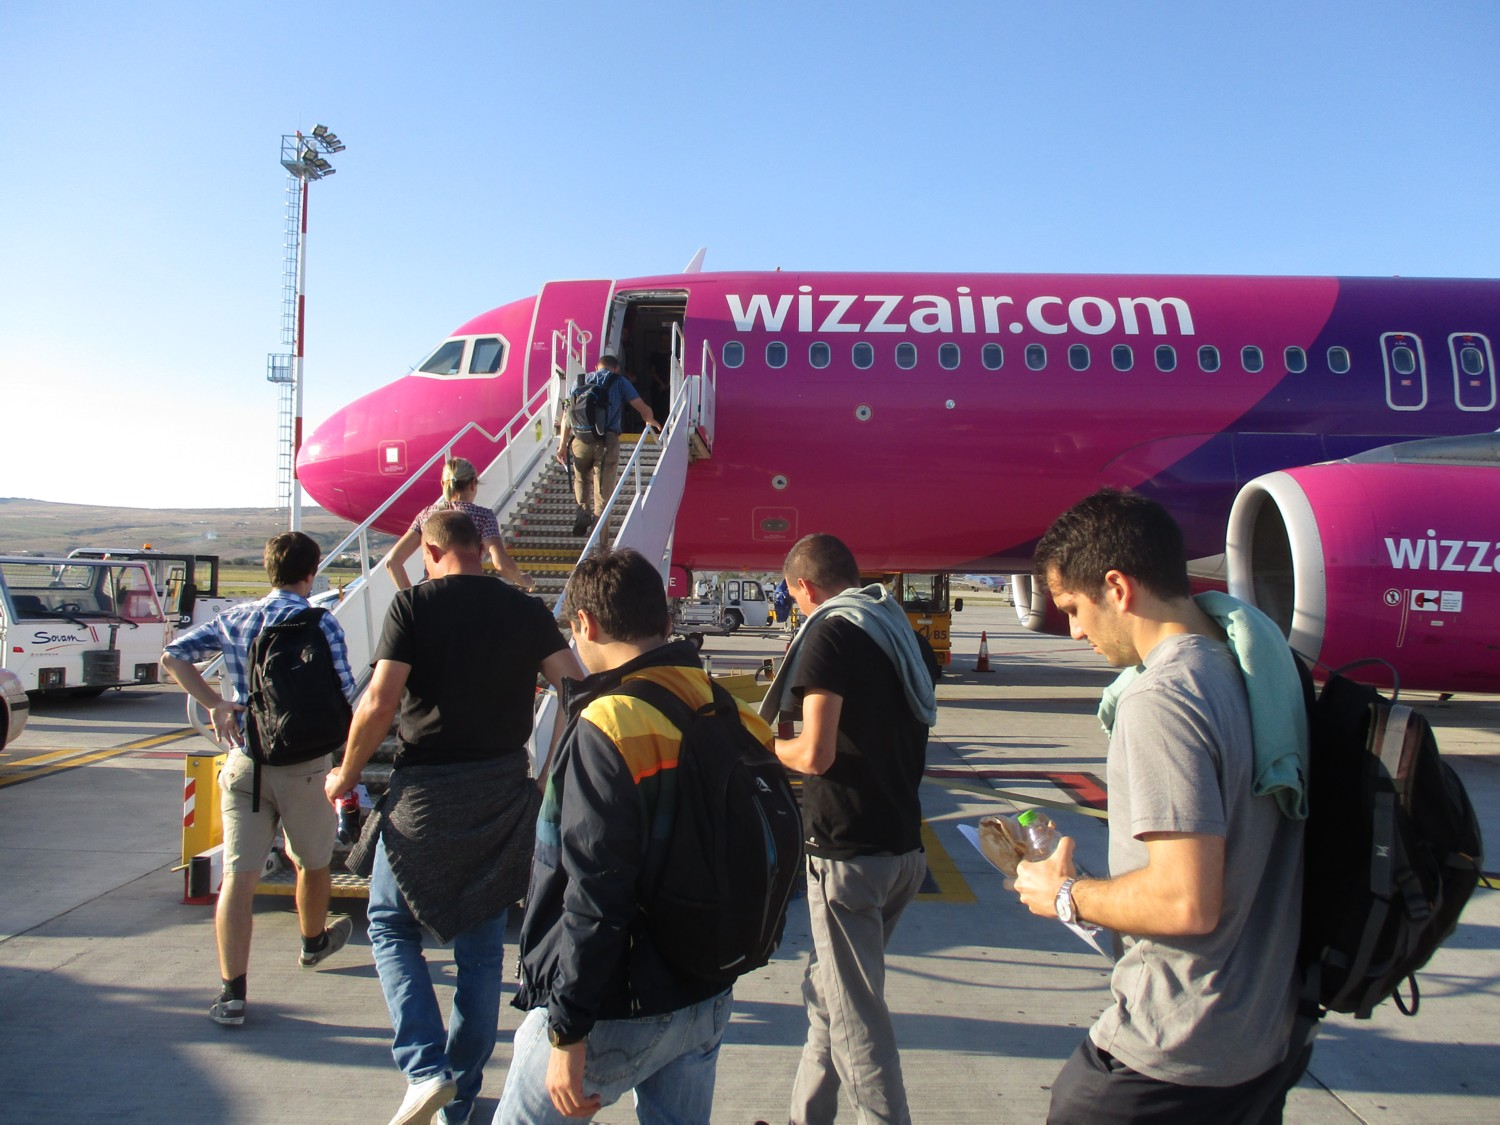 2018 fietsreis sept Wizzair